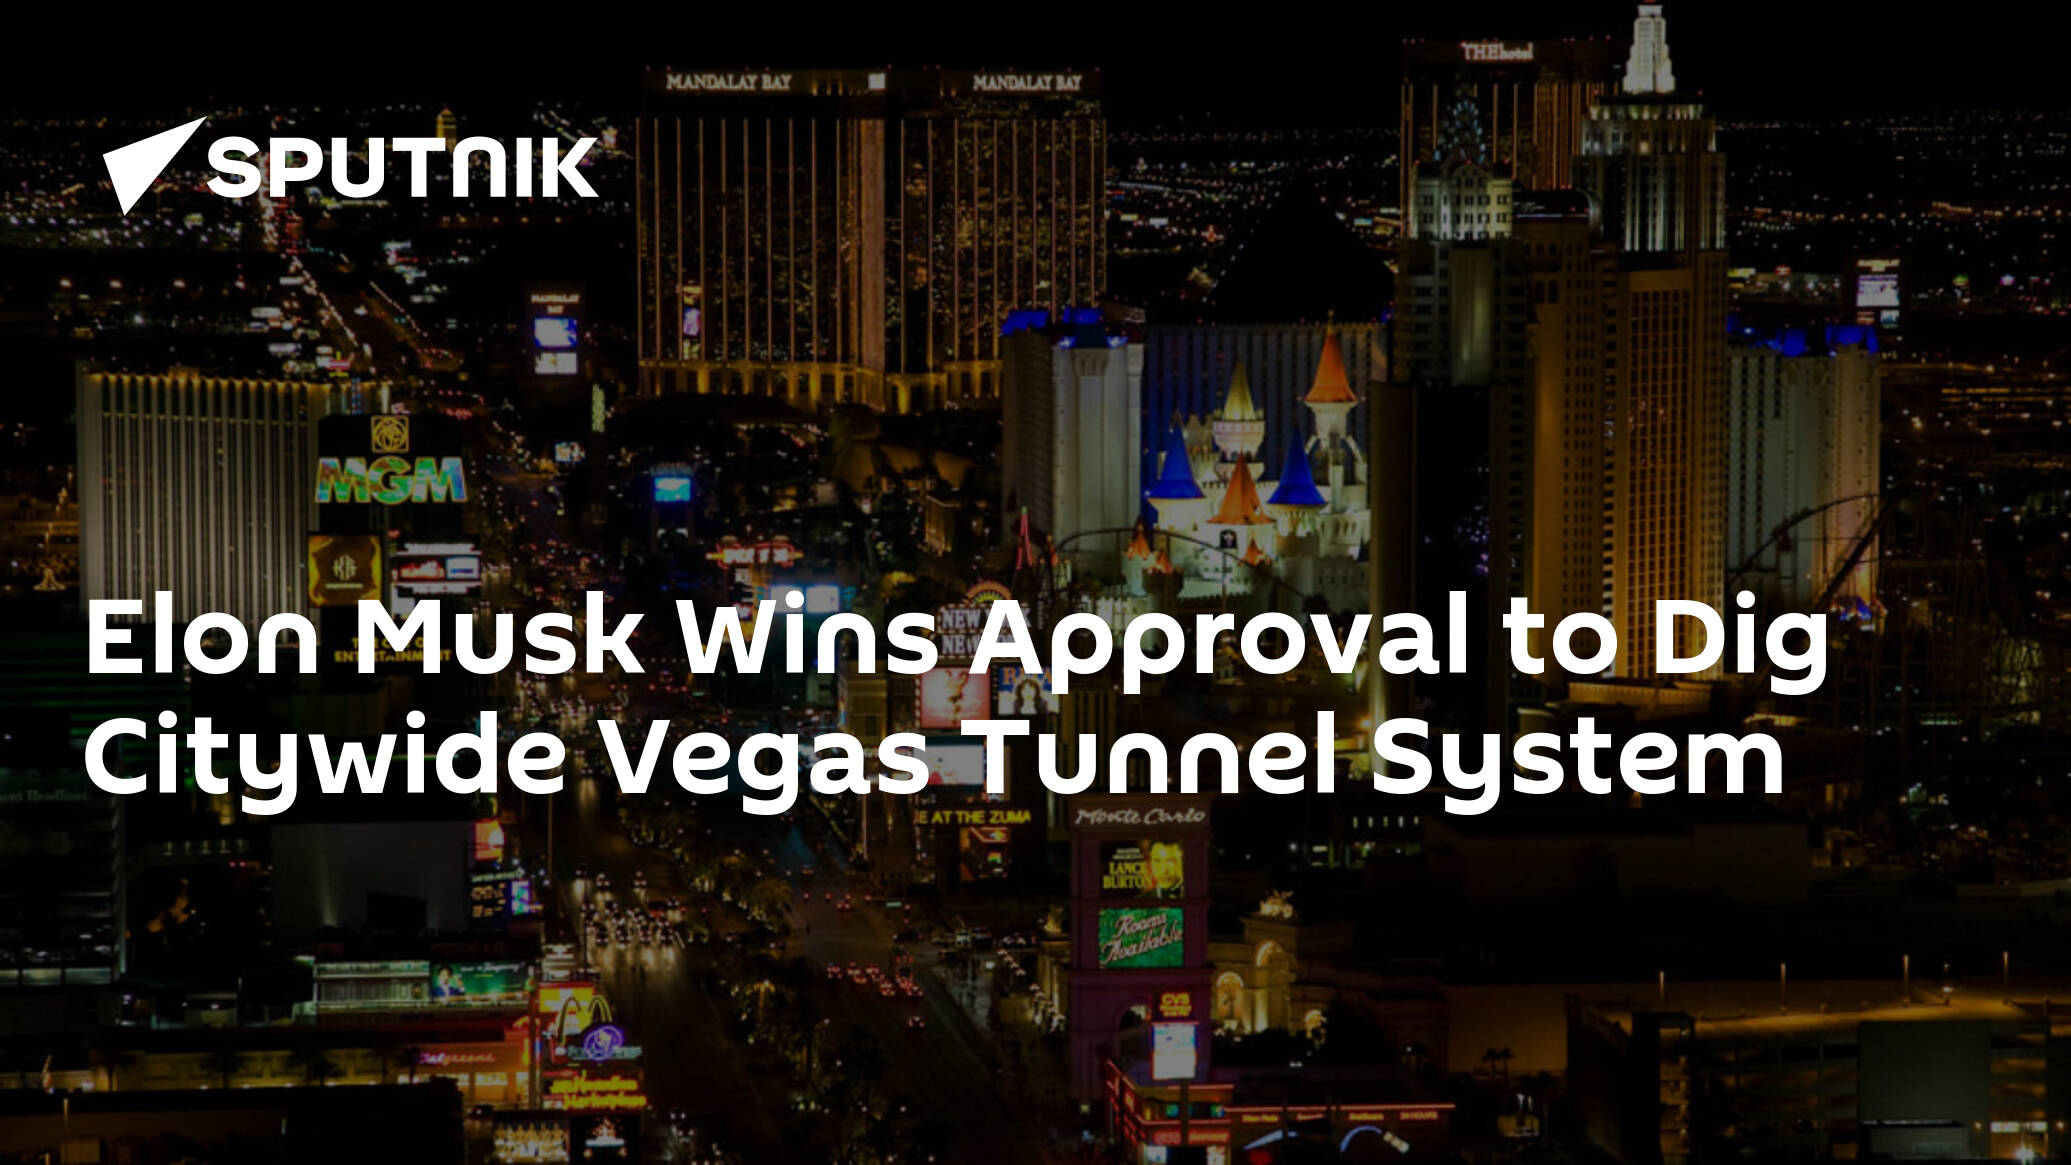 Elon Musk Wins Approval to Dig Citywide Vegas Tunnel System